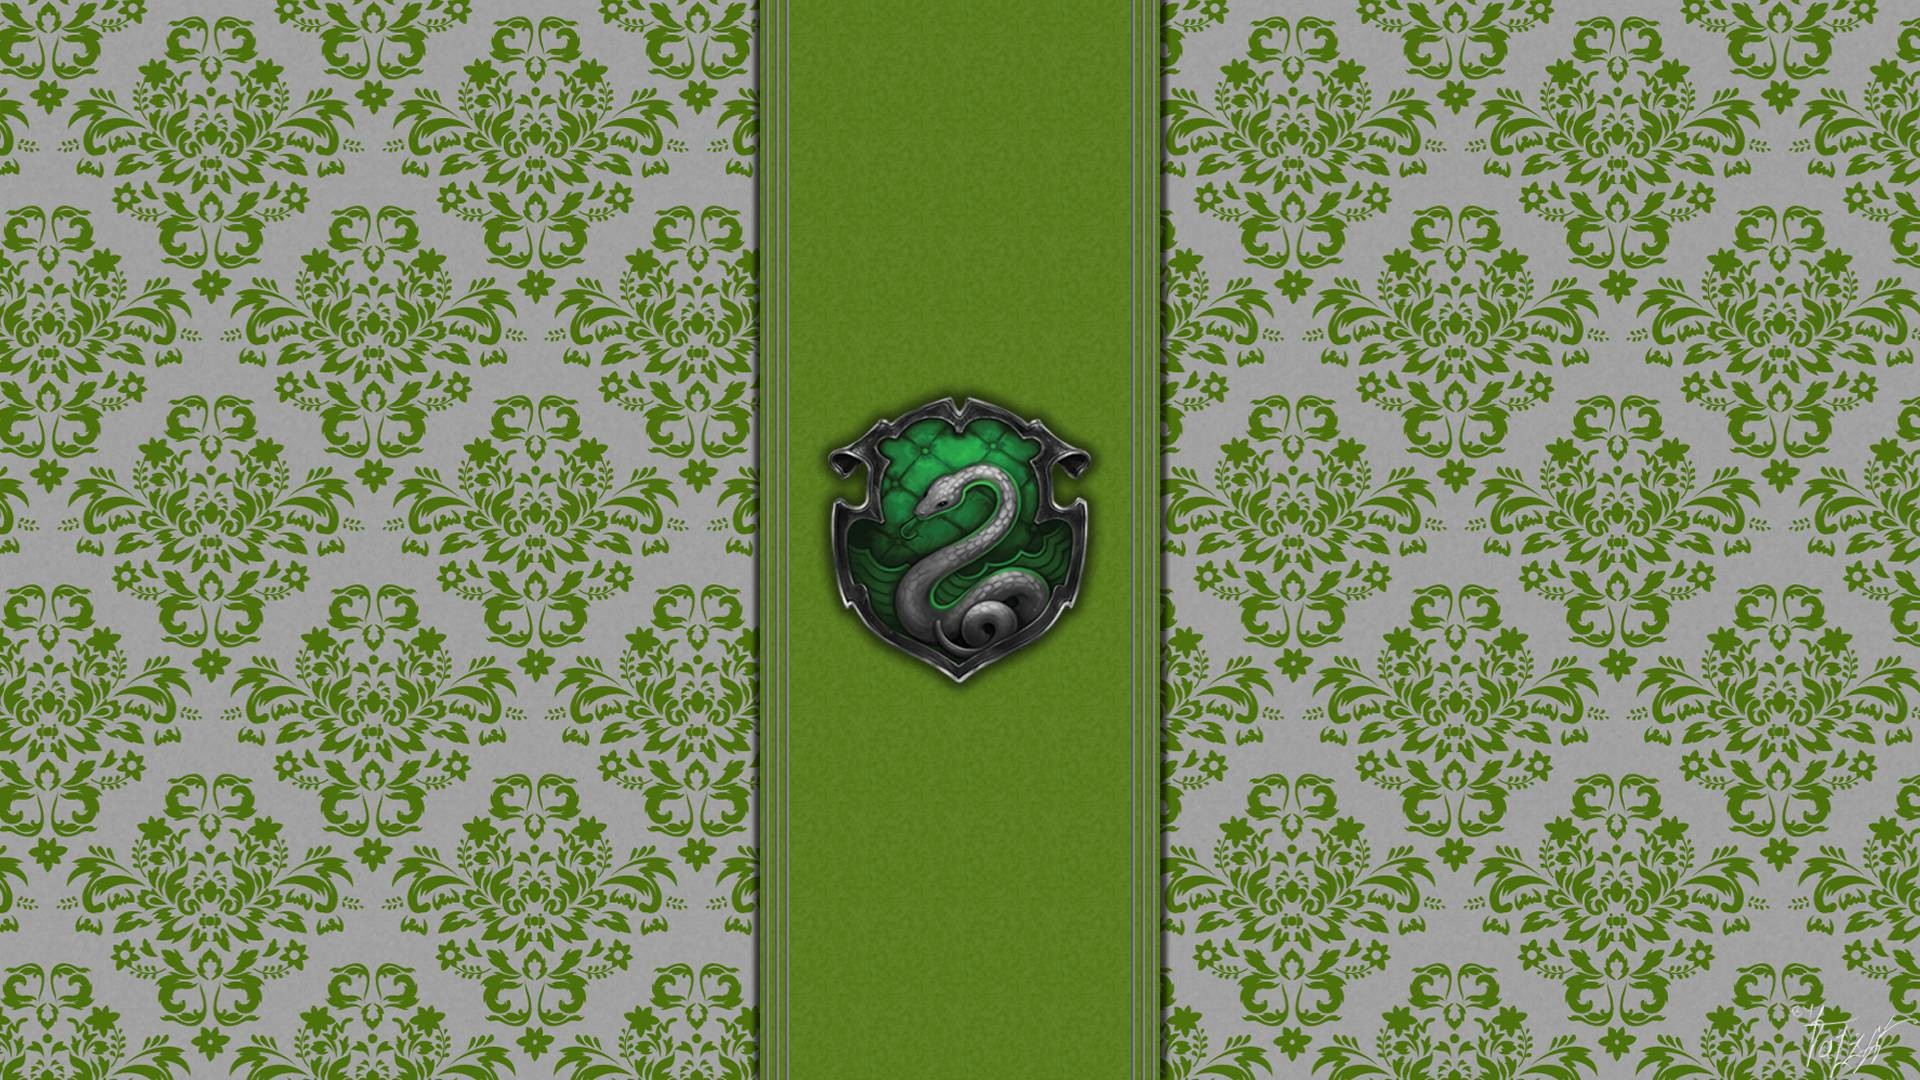 Wallpaper for all the Slytherins   Slytherin   Pinterest